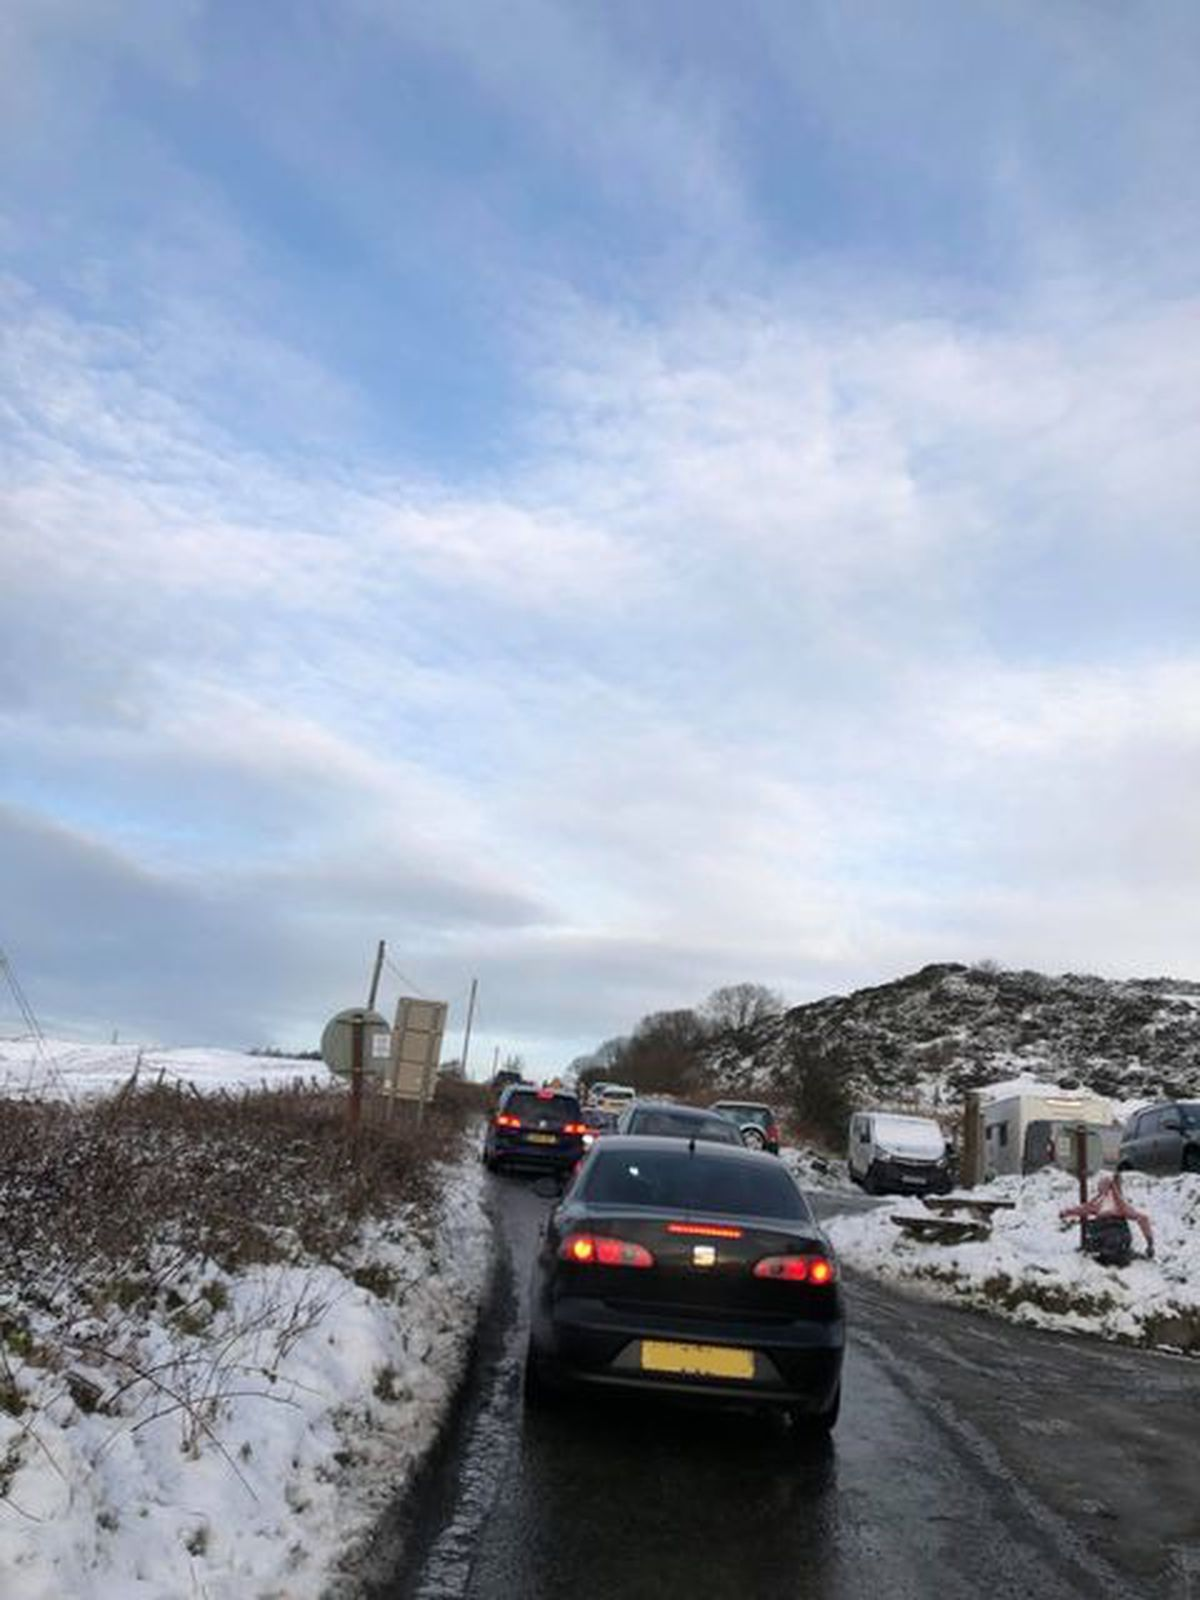 Drivers have been queueing to drive to the summit